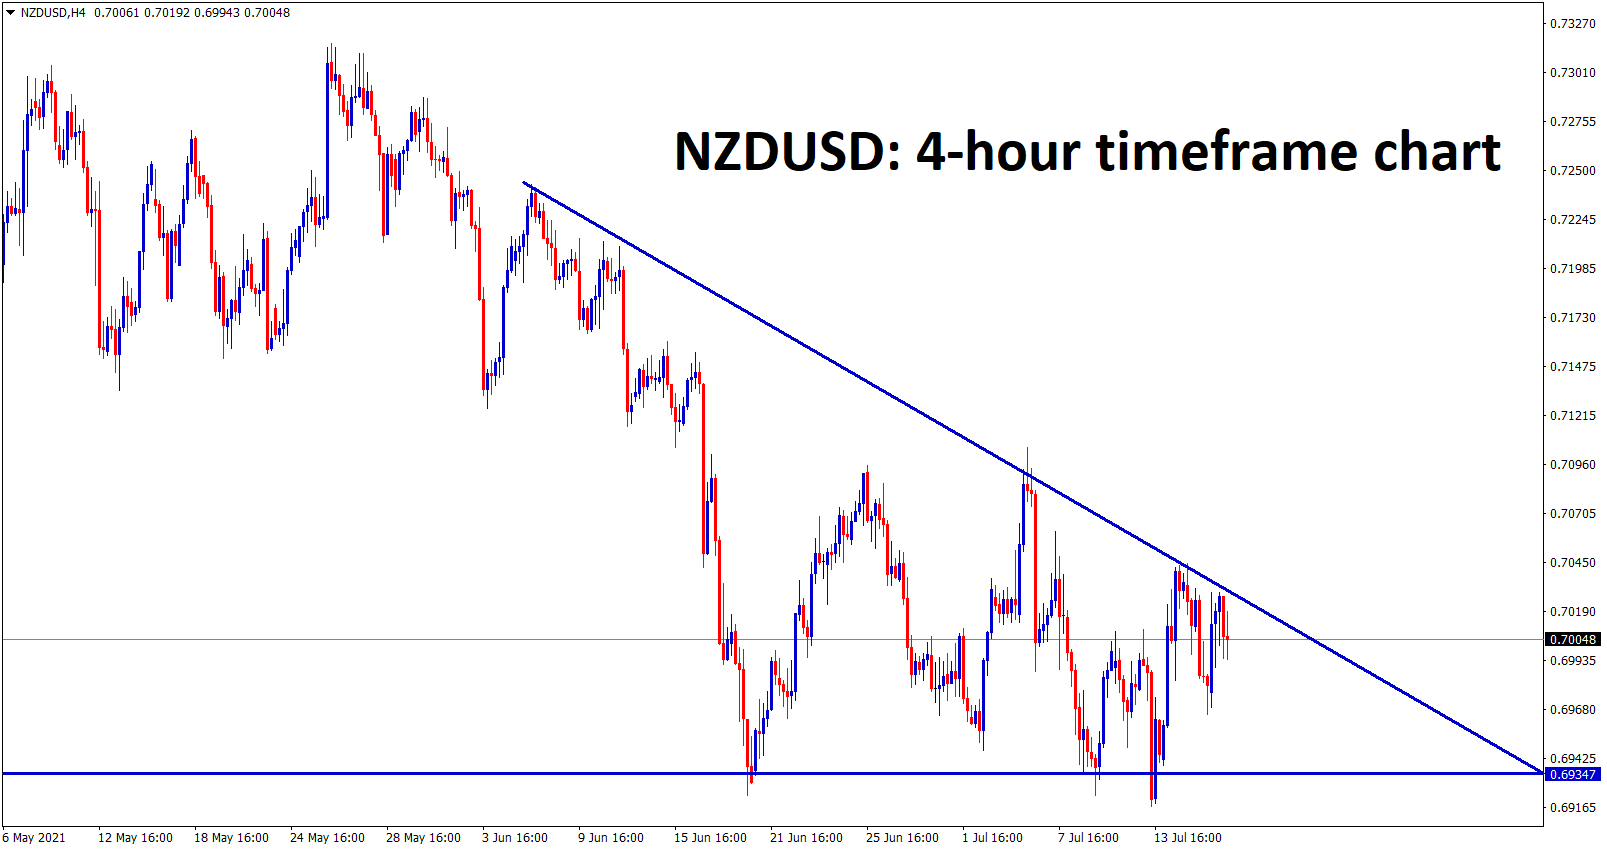 NZDUSD is moving in a descending triangle pattern for a long time triangle getting narrower we can expect a breakout soon from this triangle pattern.